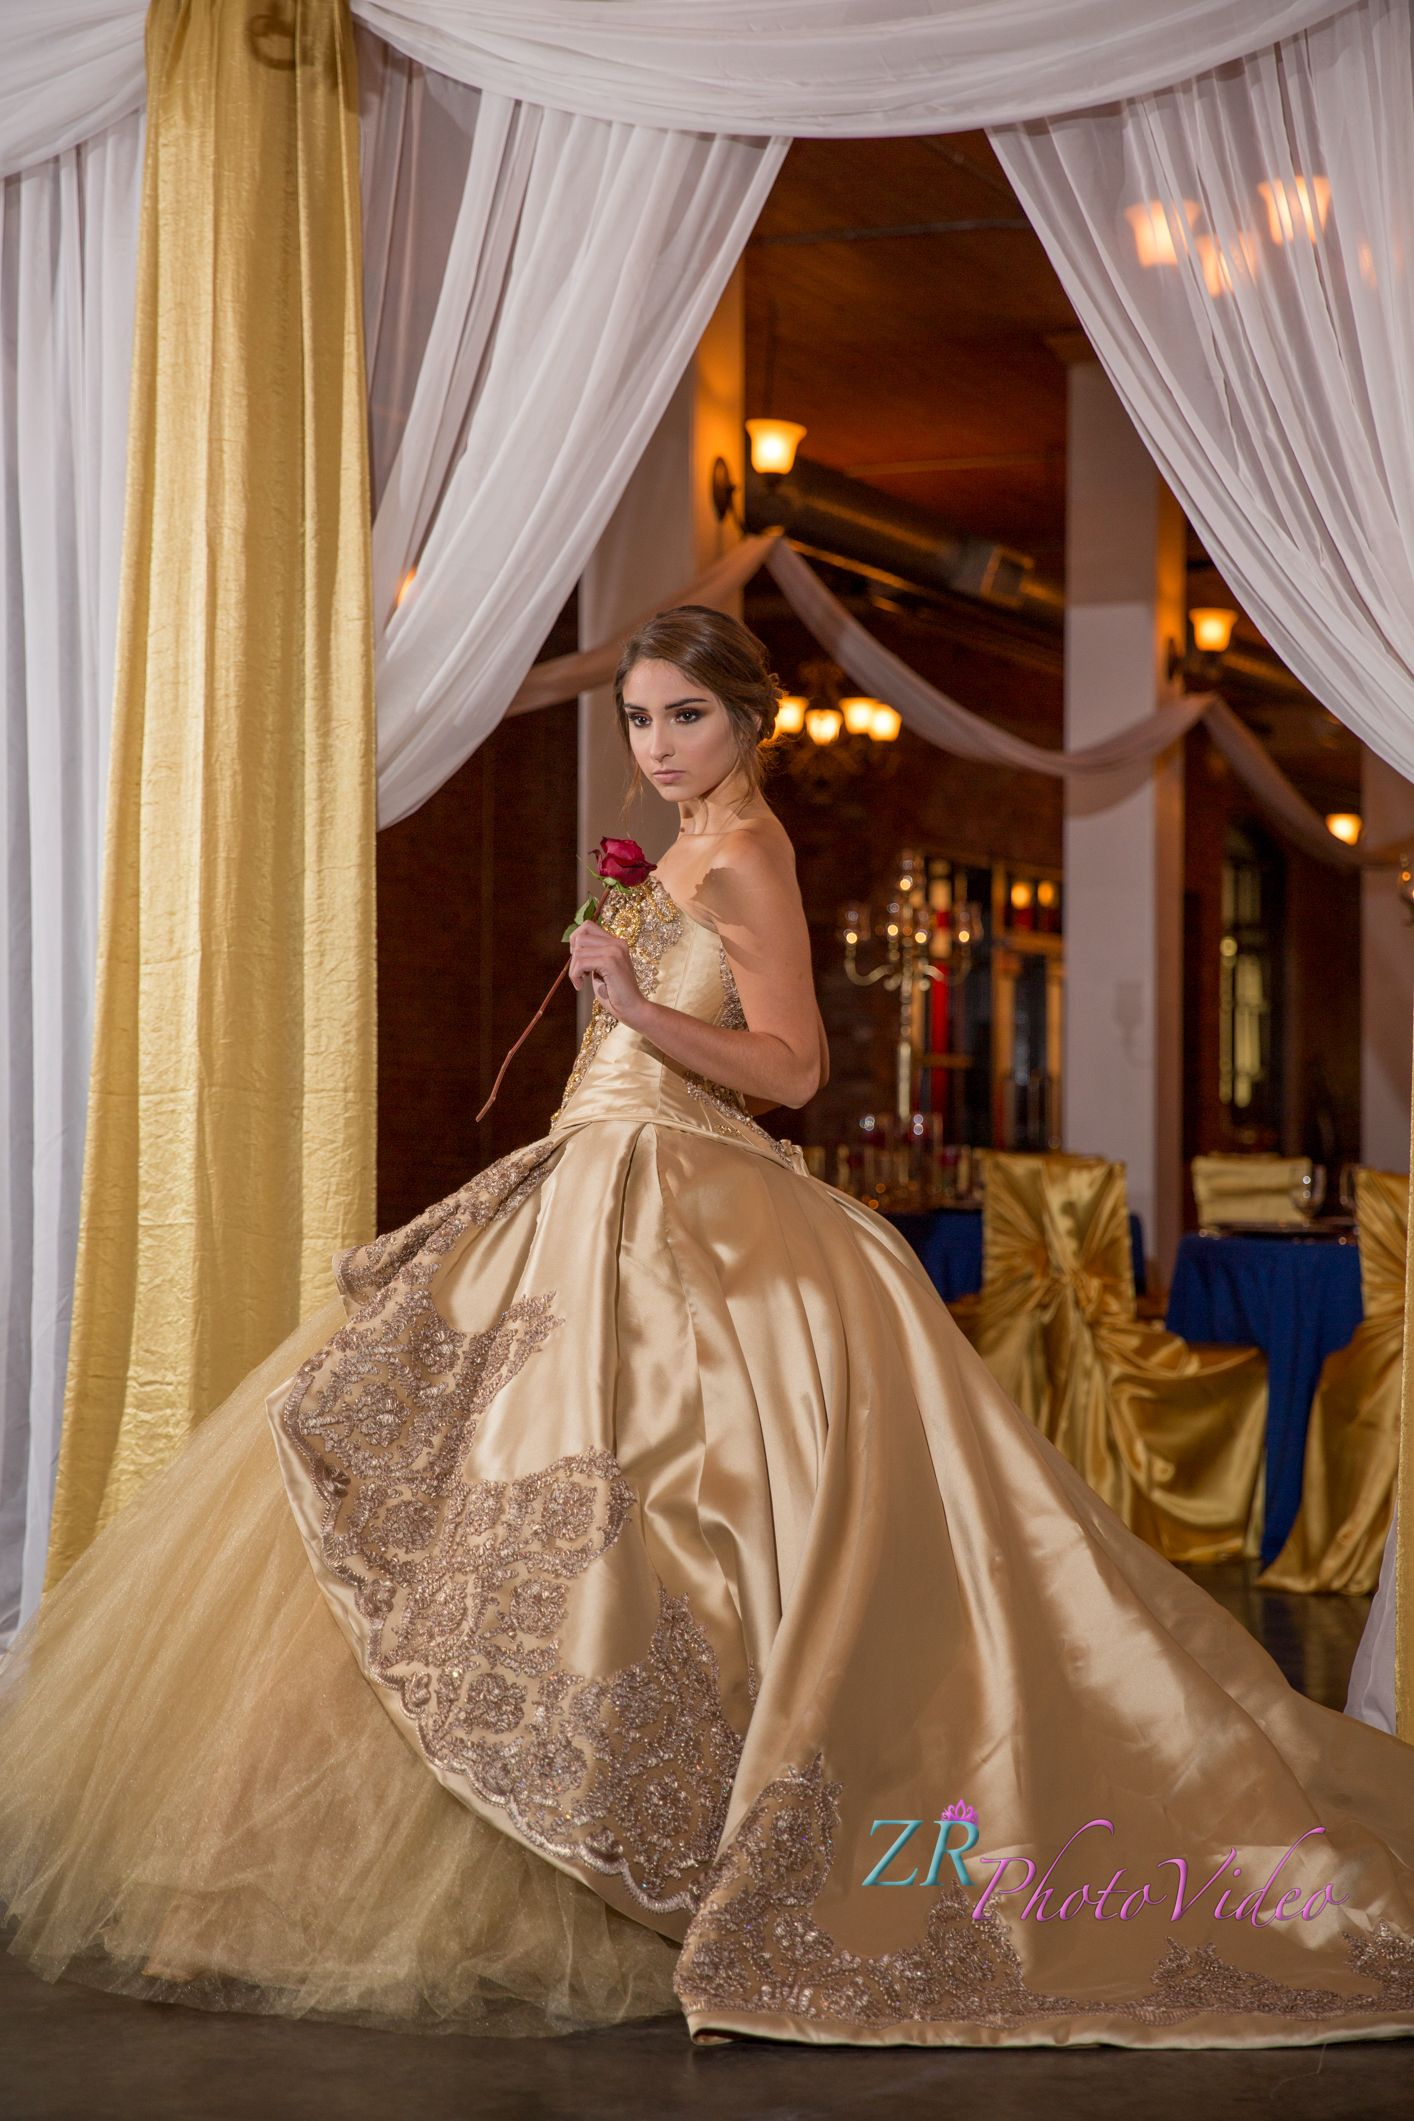 Beauty And The Beast Quinceanera Tale As Old As Time Gold And Red Wedding Gold And Red Q Beauty And The Beast Dress Quinceanera Dresses Gold Quince Dresses [ 2121 x 1414 Pixel ]